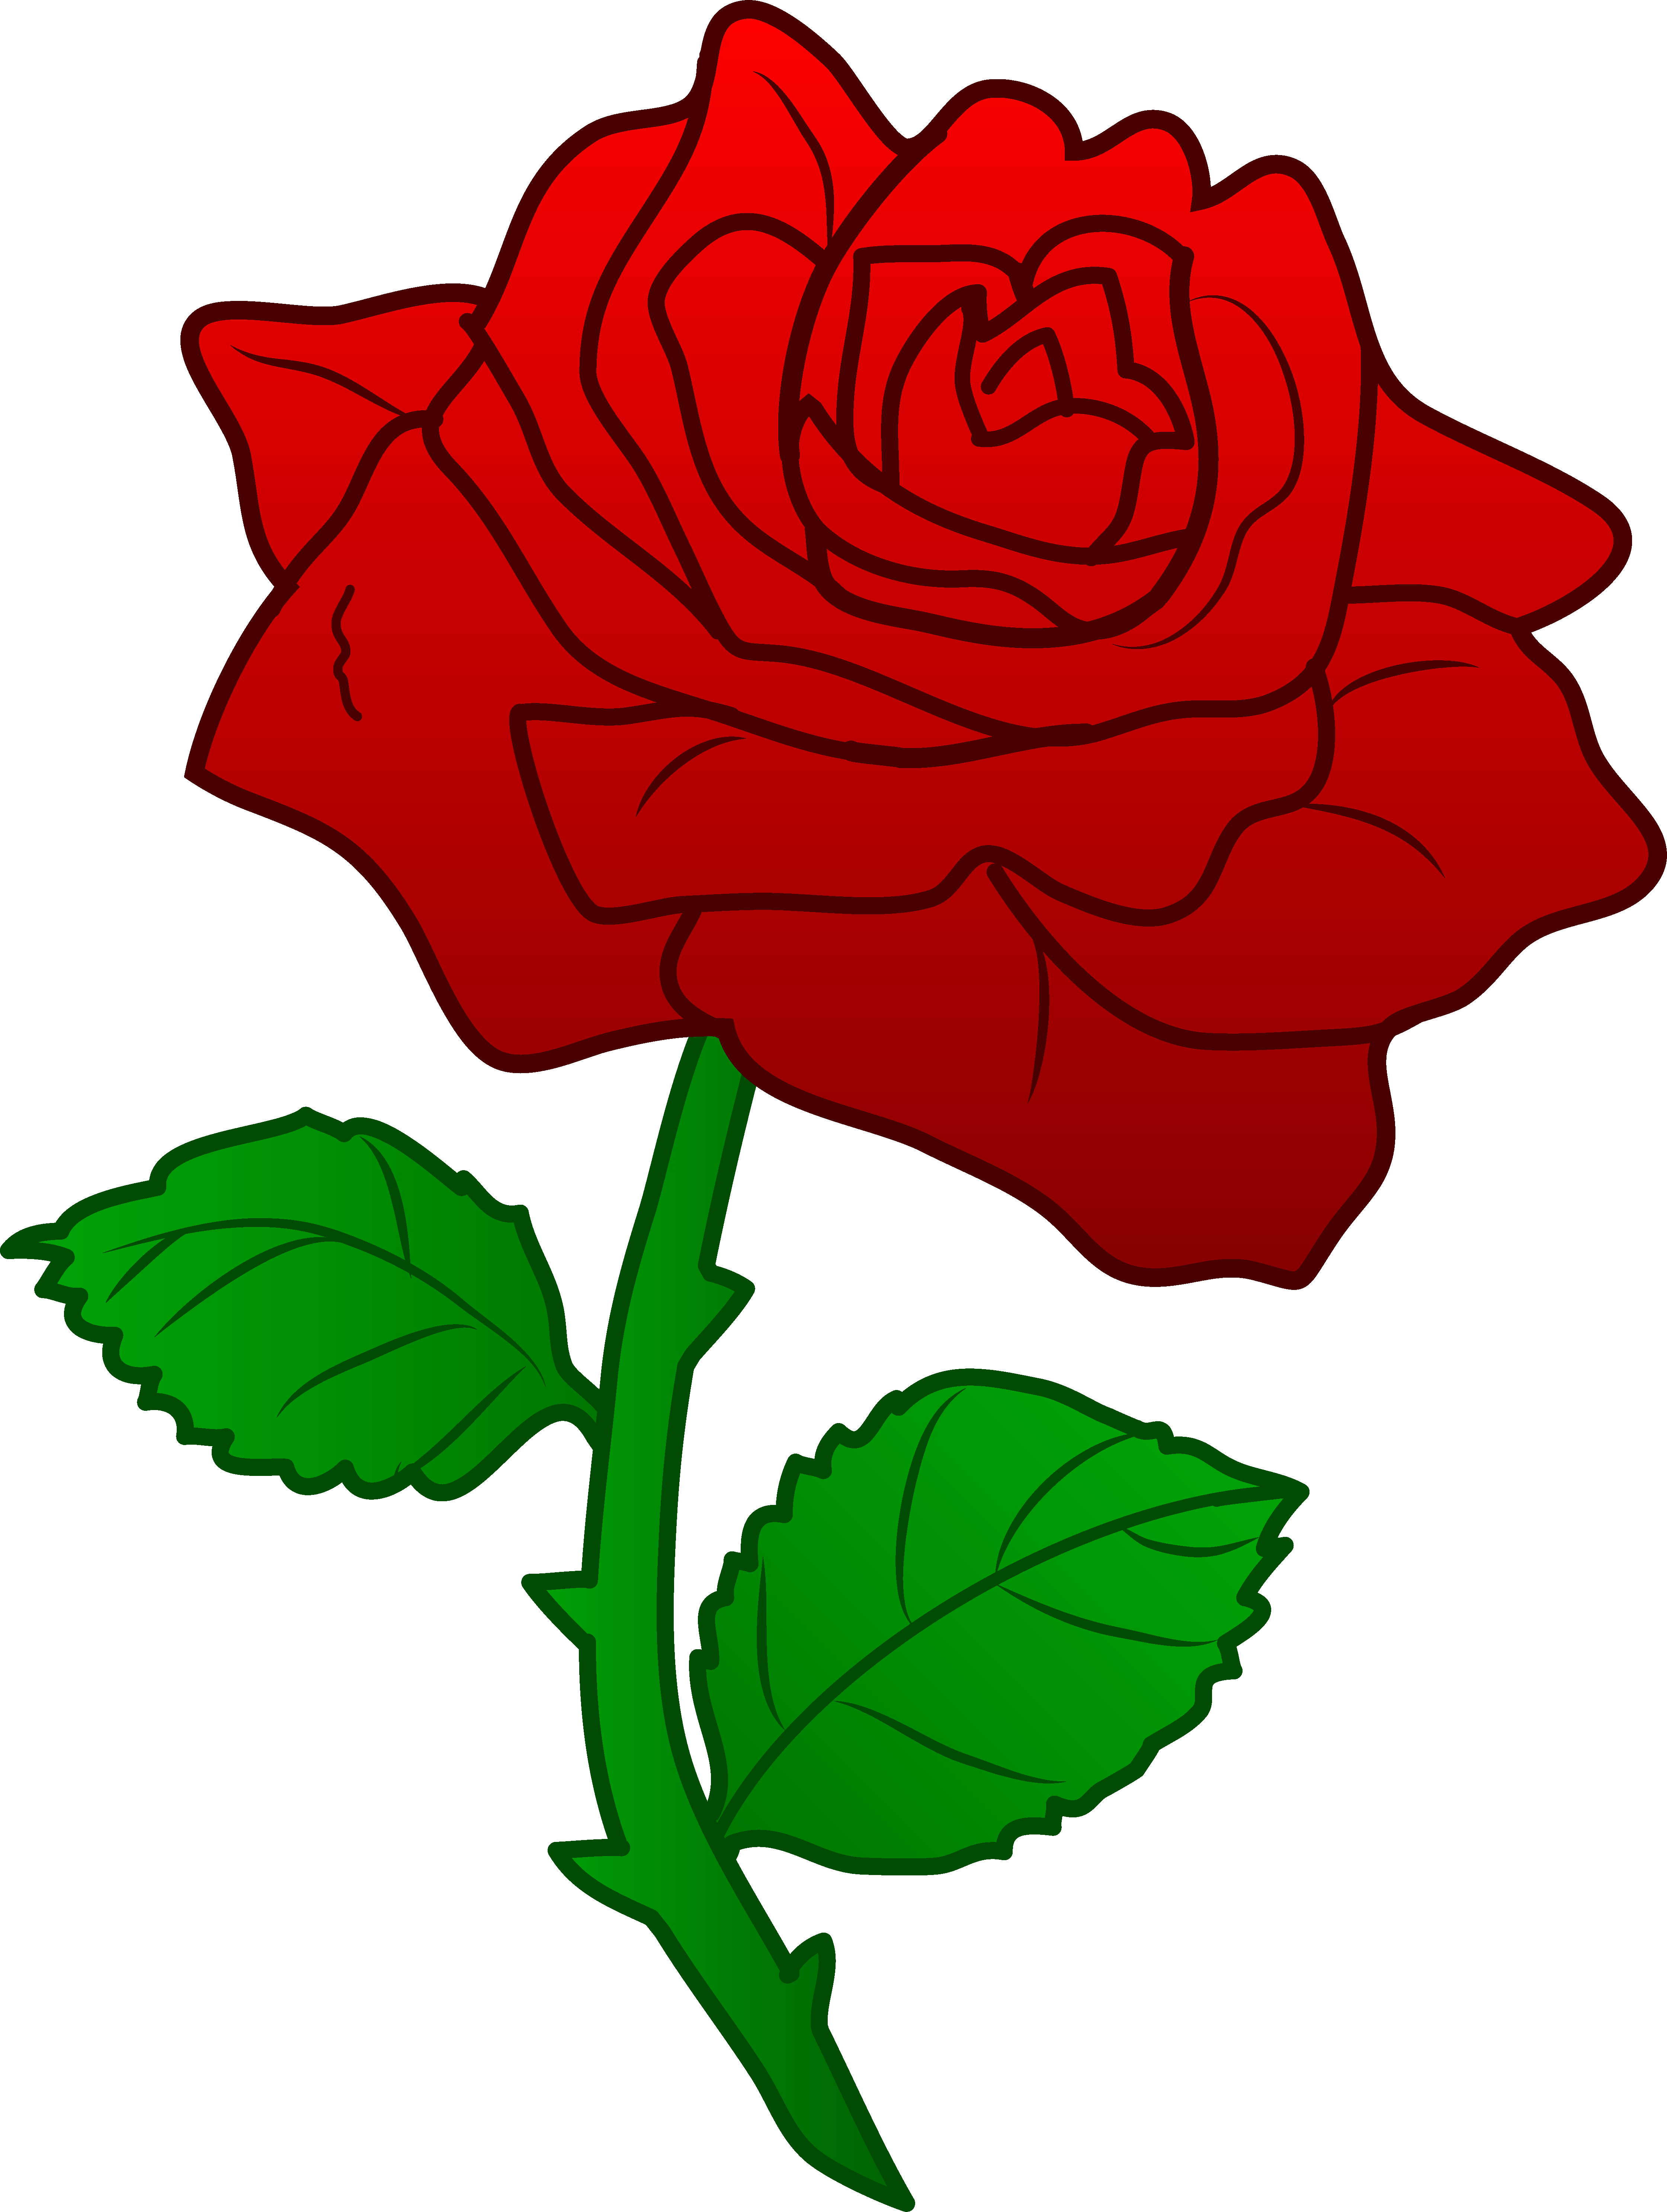 Roses cliparts clipart royalty free Roses Clip Art & Roses Clip Art Clip Art Images - ClipartALL.com clipart royalty free